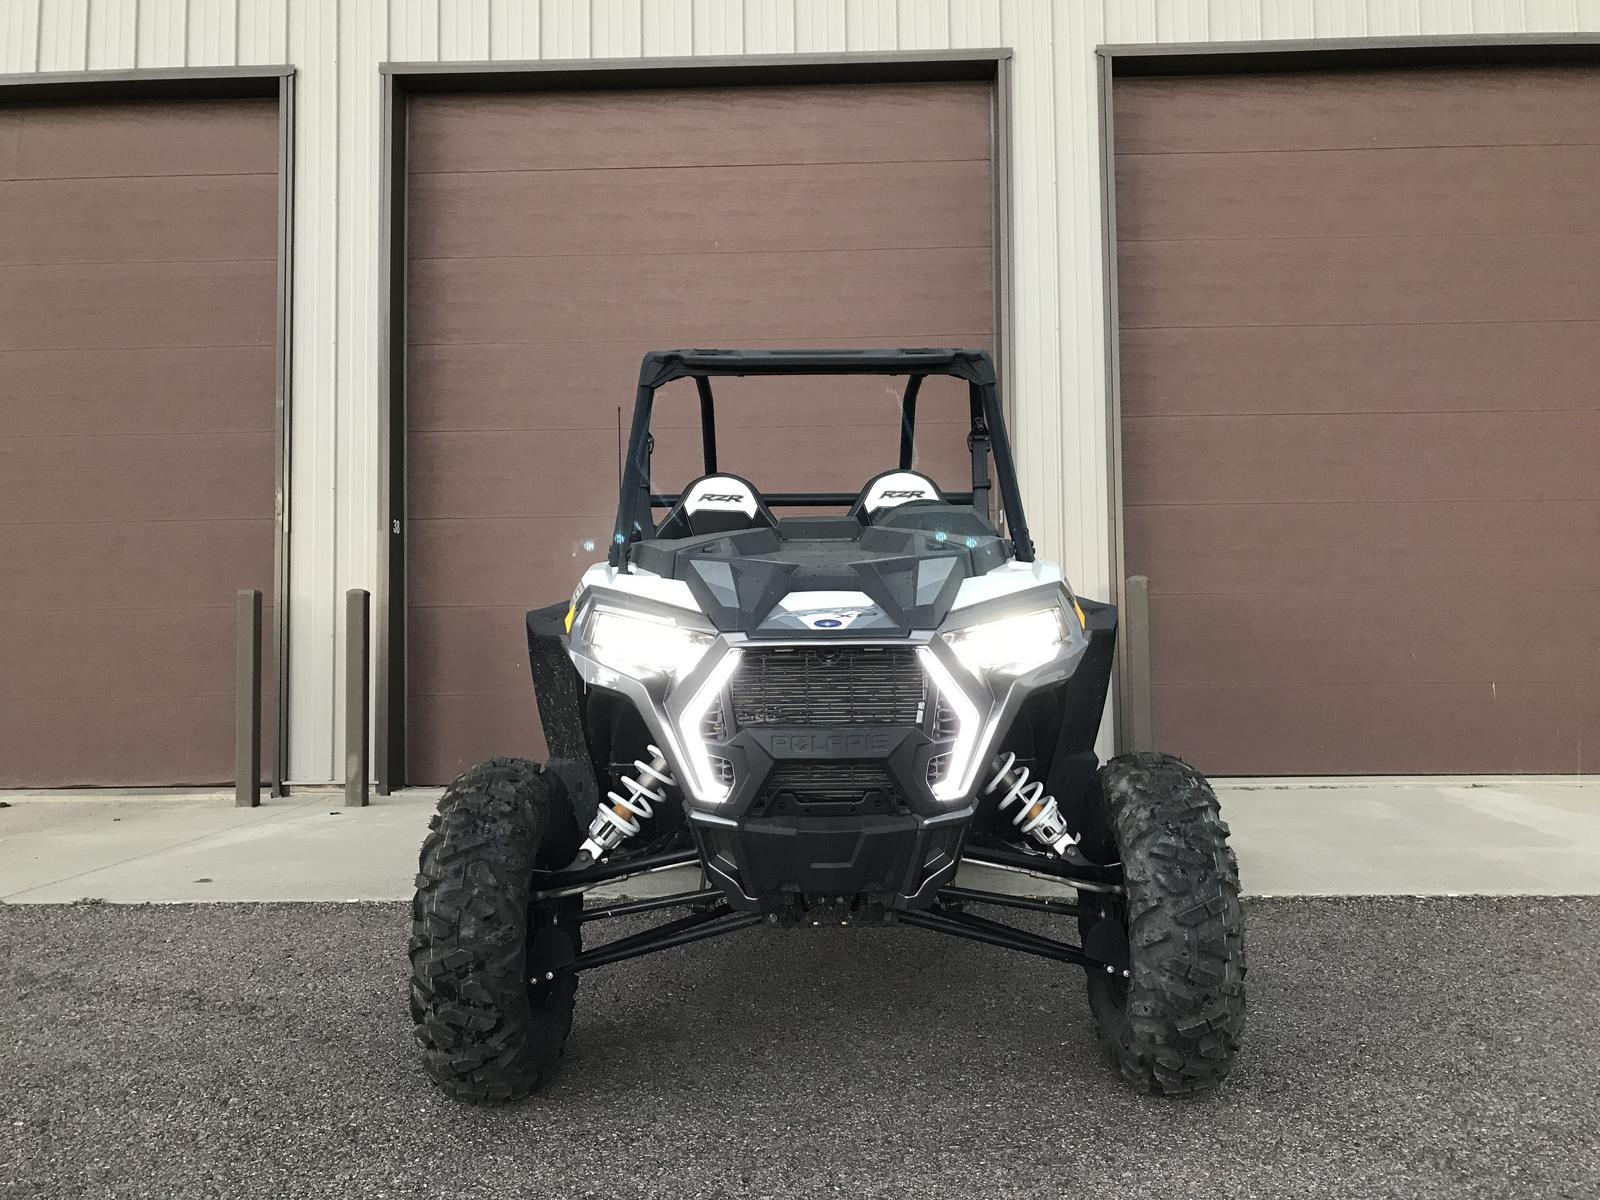 2019 Polaris Industries RZR XP® 1000 PS RC - White Pearl for sale in